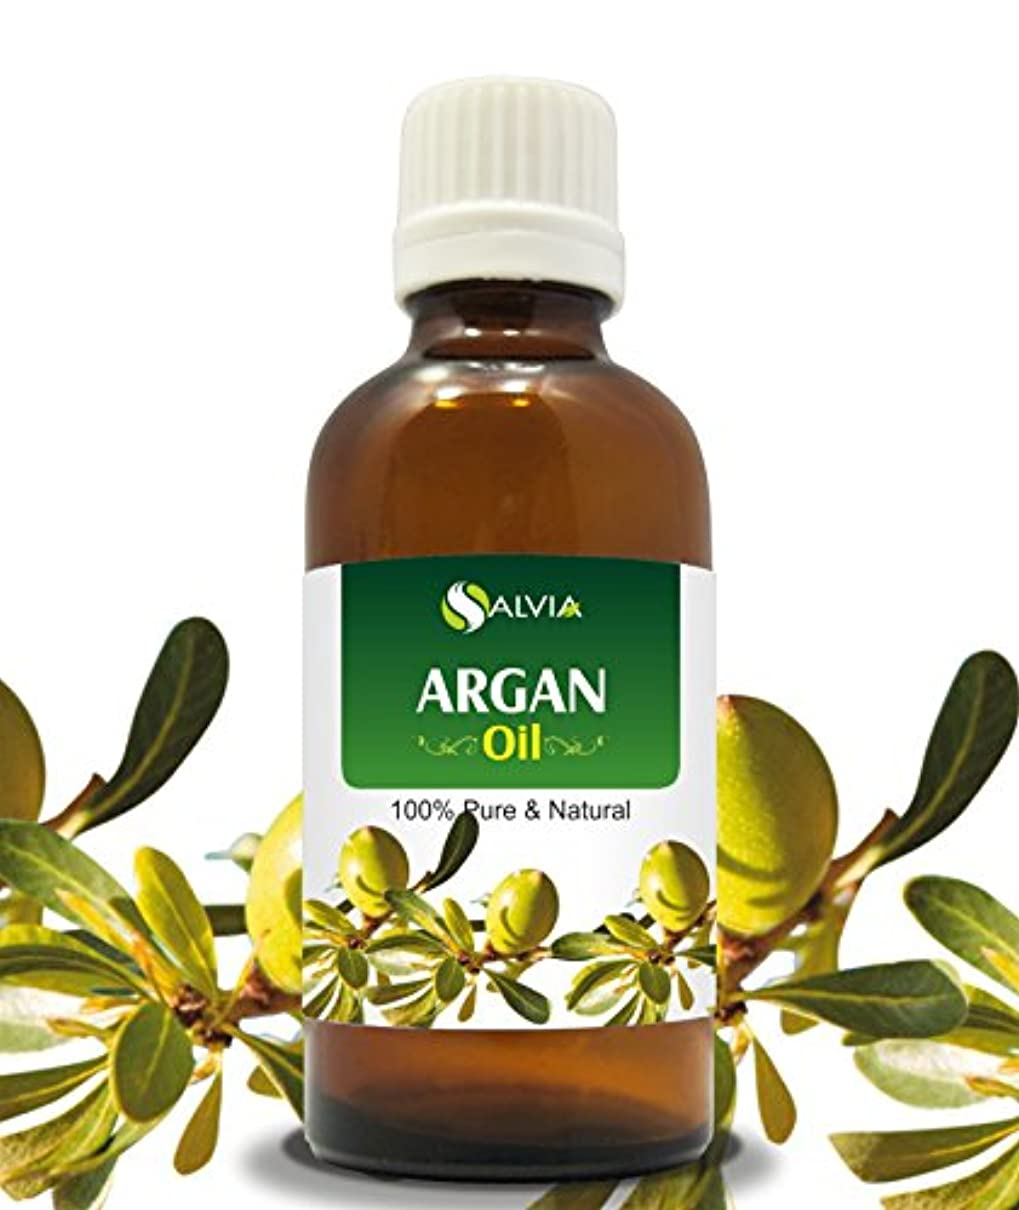 平凡ビン苦痛ARGAN OIL 100% NATURAL PURE UNDILUTED UNCUT OILS 15ML